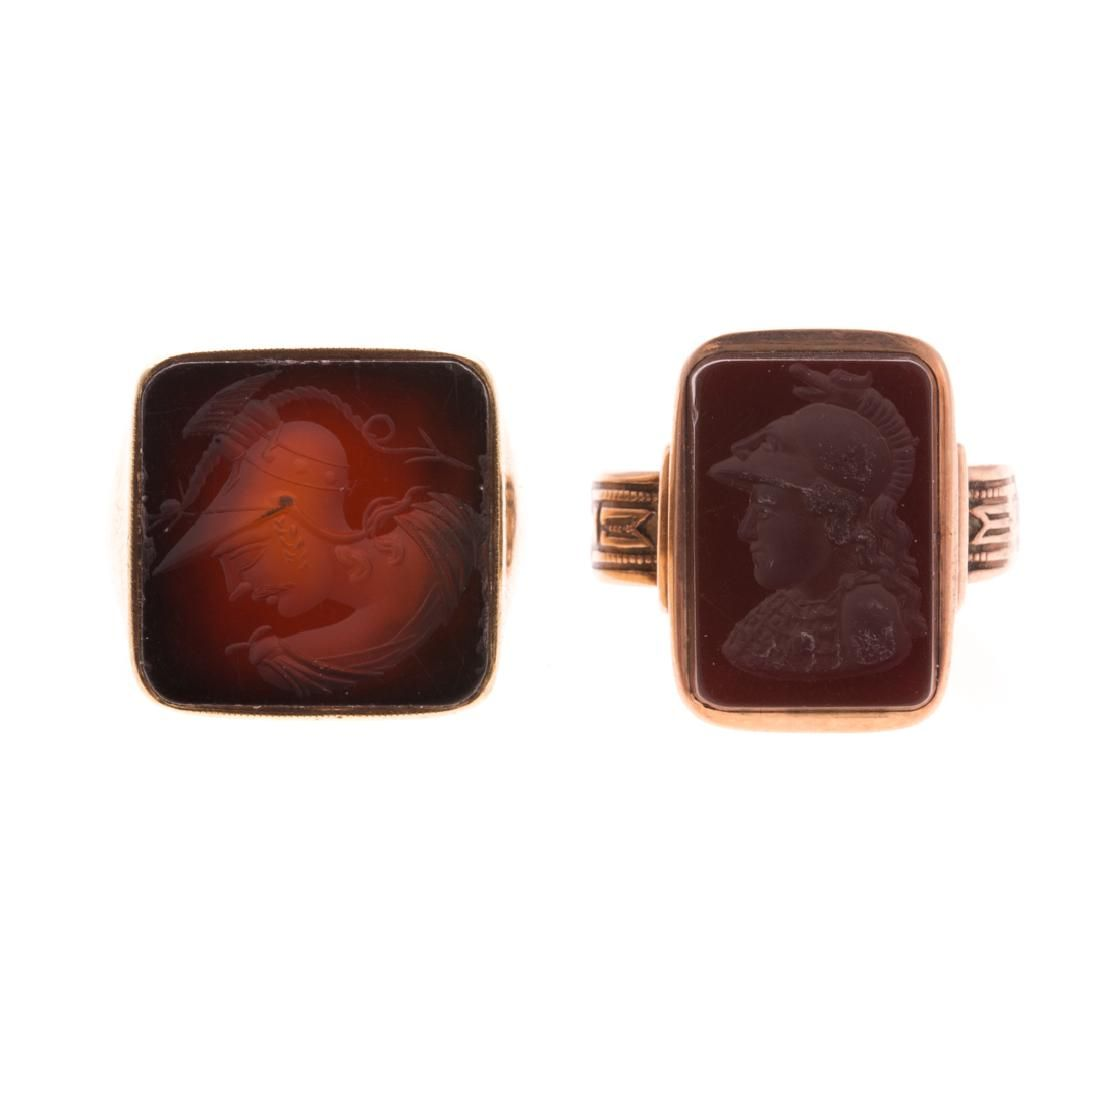 A Pair of Gent's Carnelian Intaglio Rings